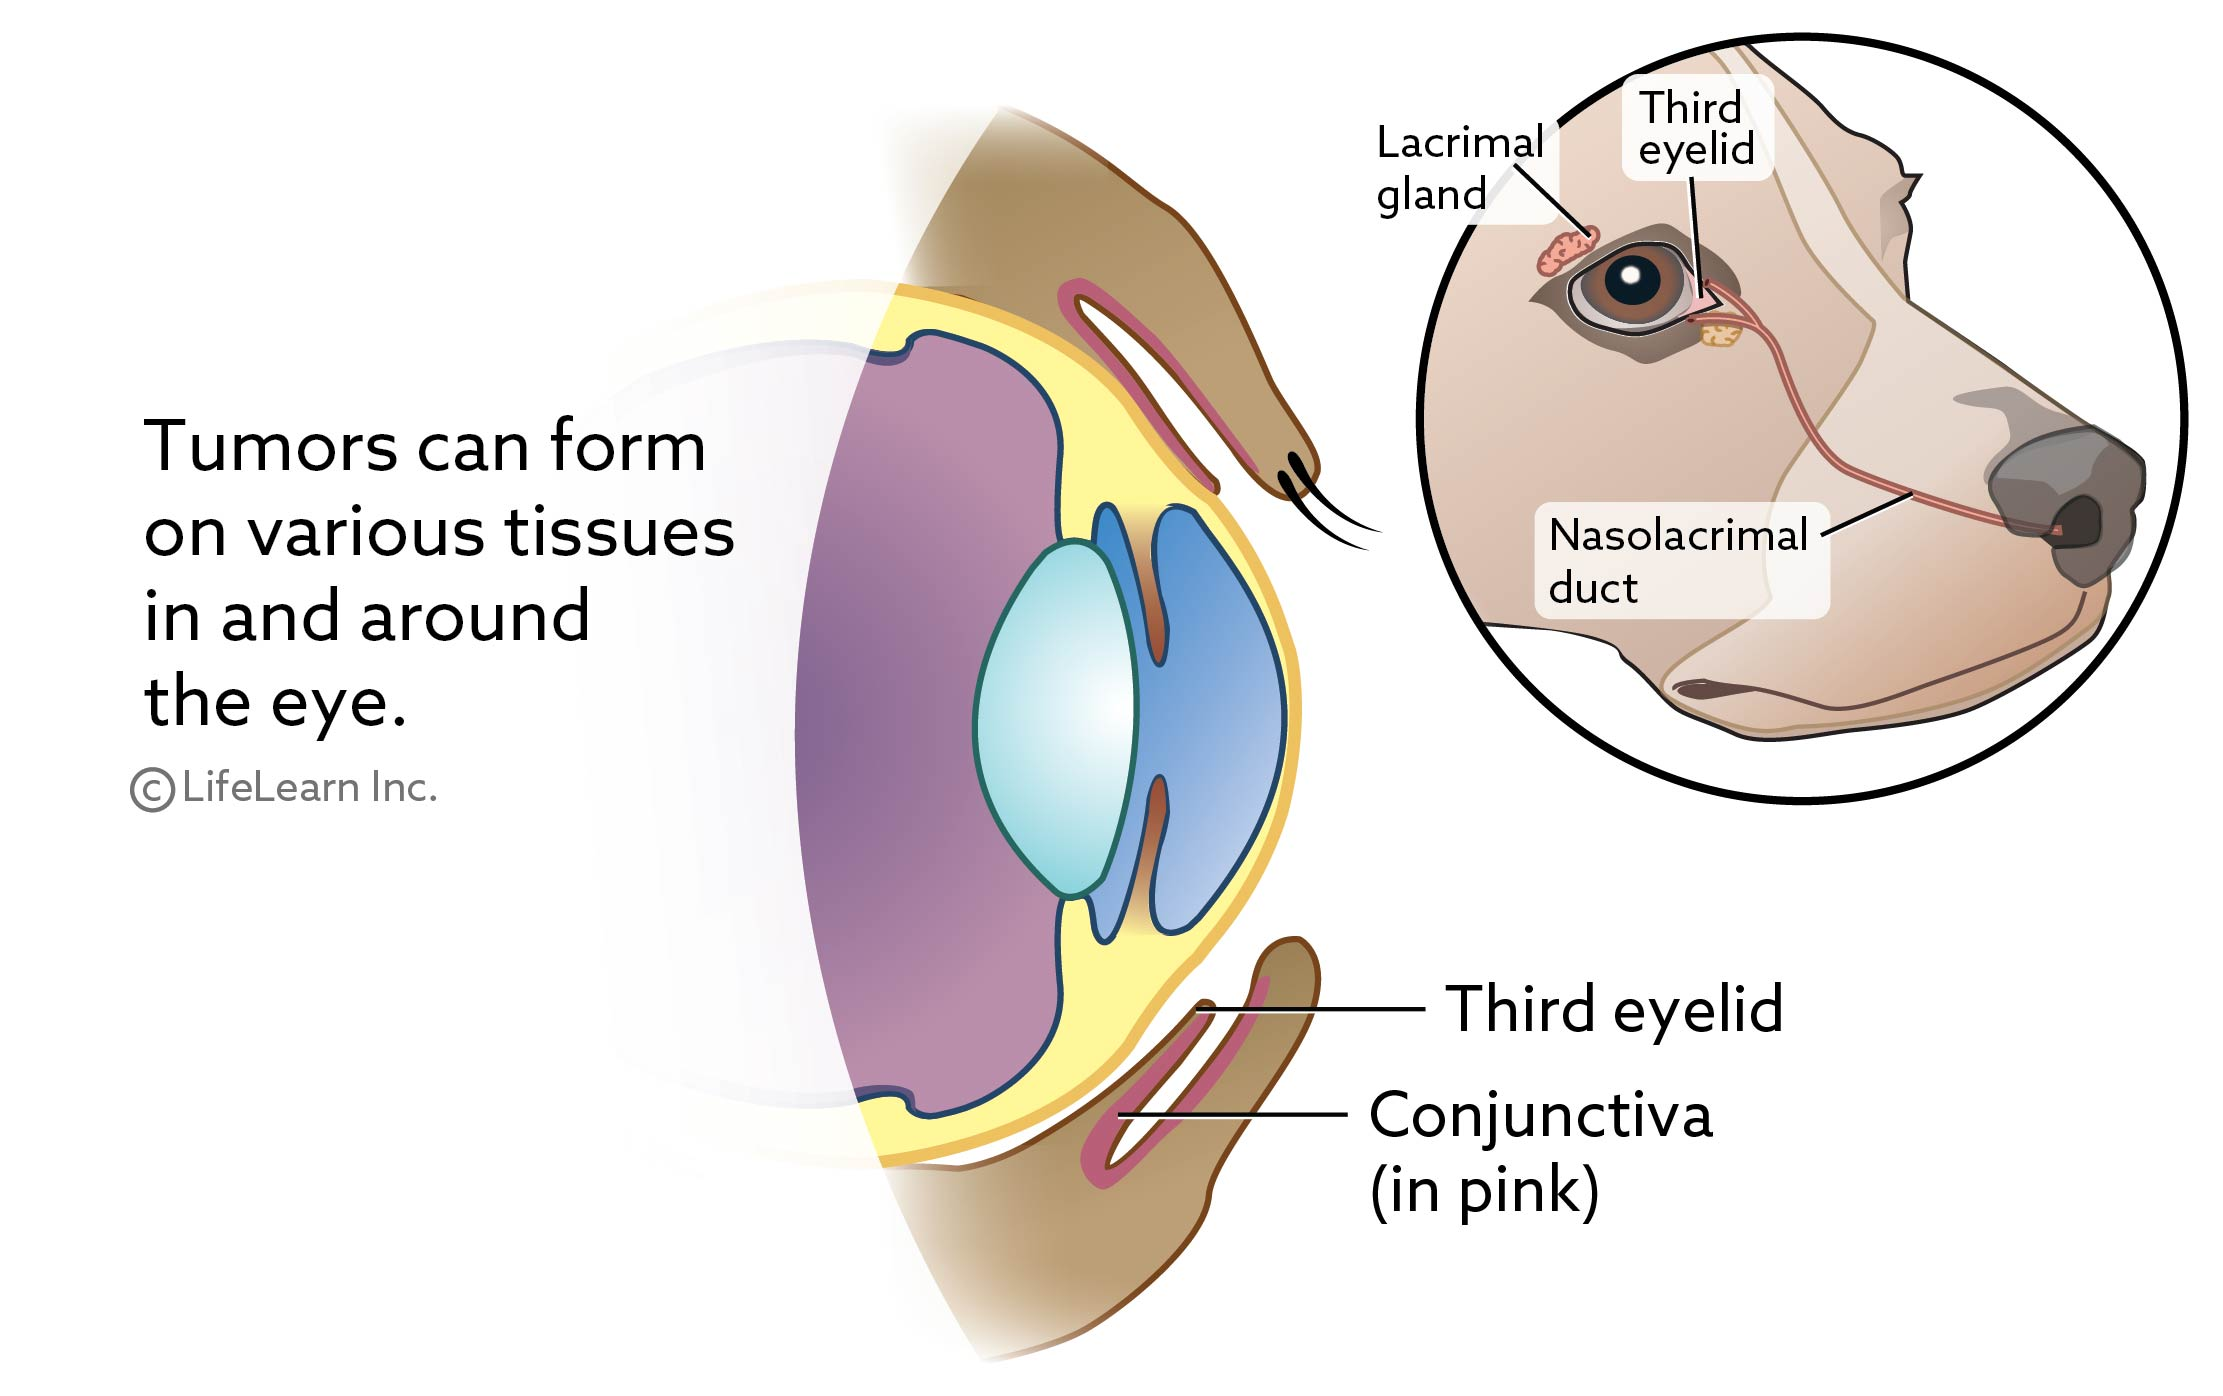 eye_tumors_cross_section1_2018-01